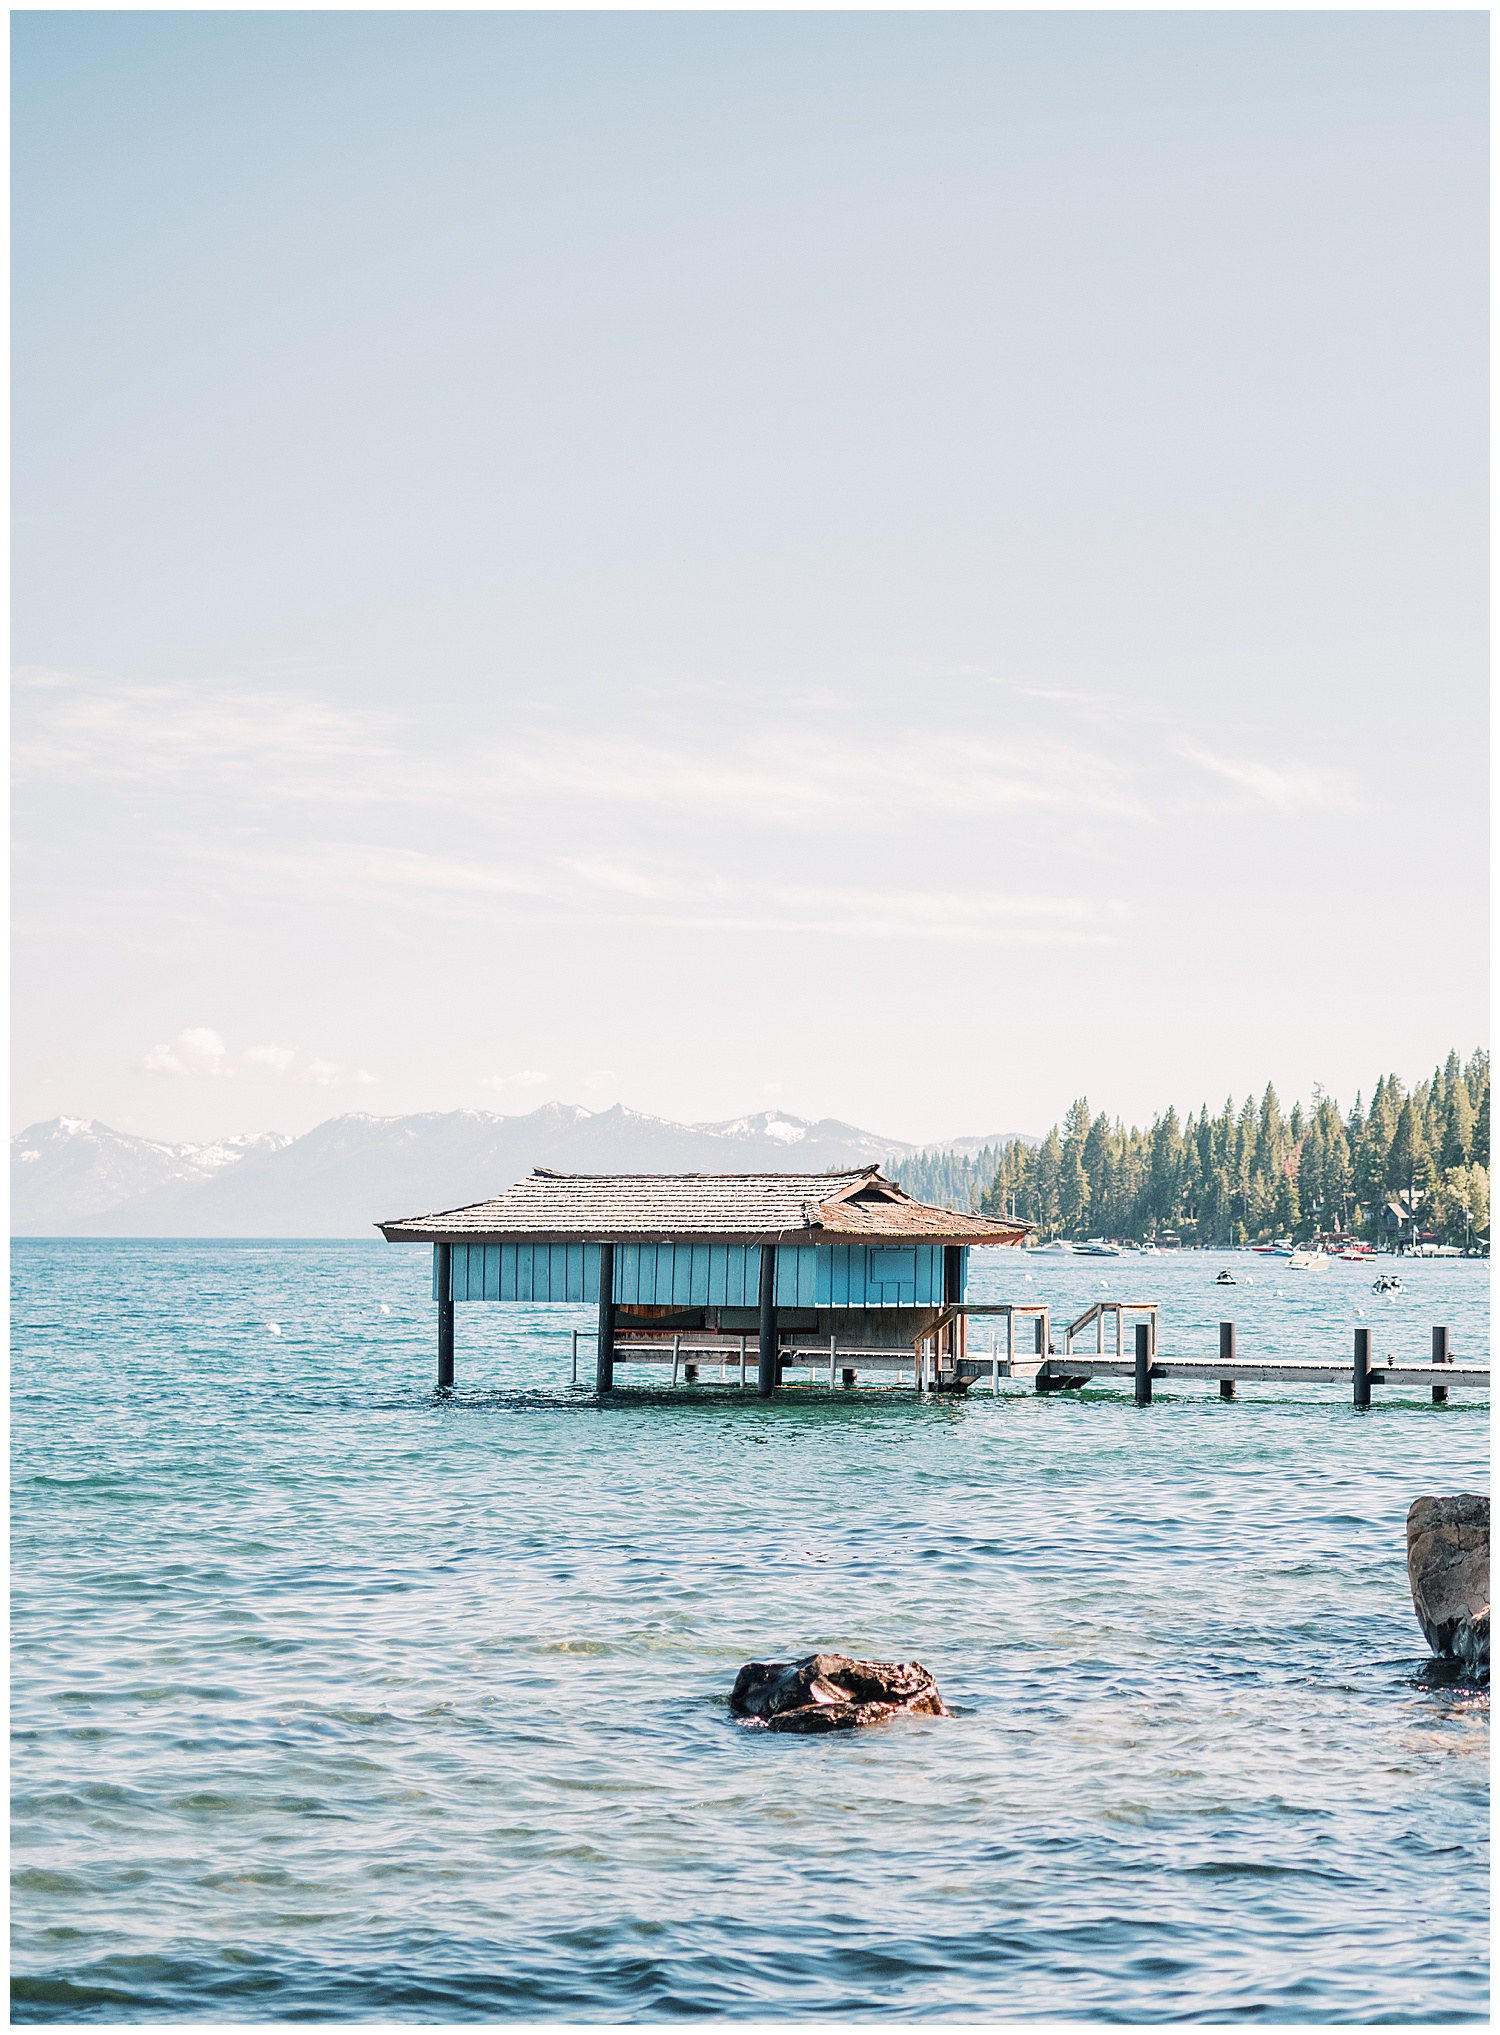 Janine_Licare_Photography_San_Francisco_Wedding_Photographer_Lake_Tahoe_West_Shore_Cafe_Colorful_Summer_0001.jpg